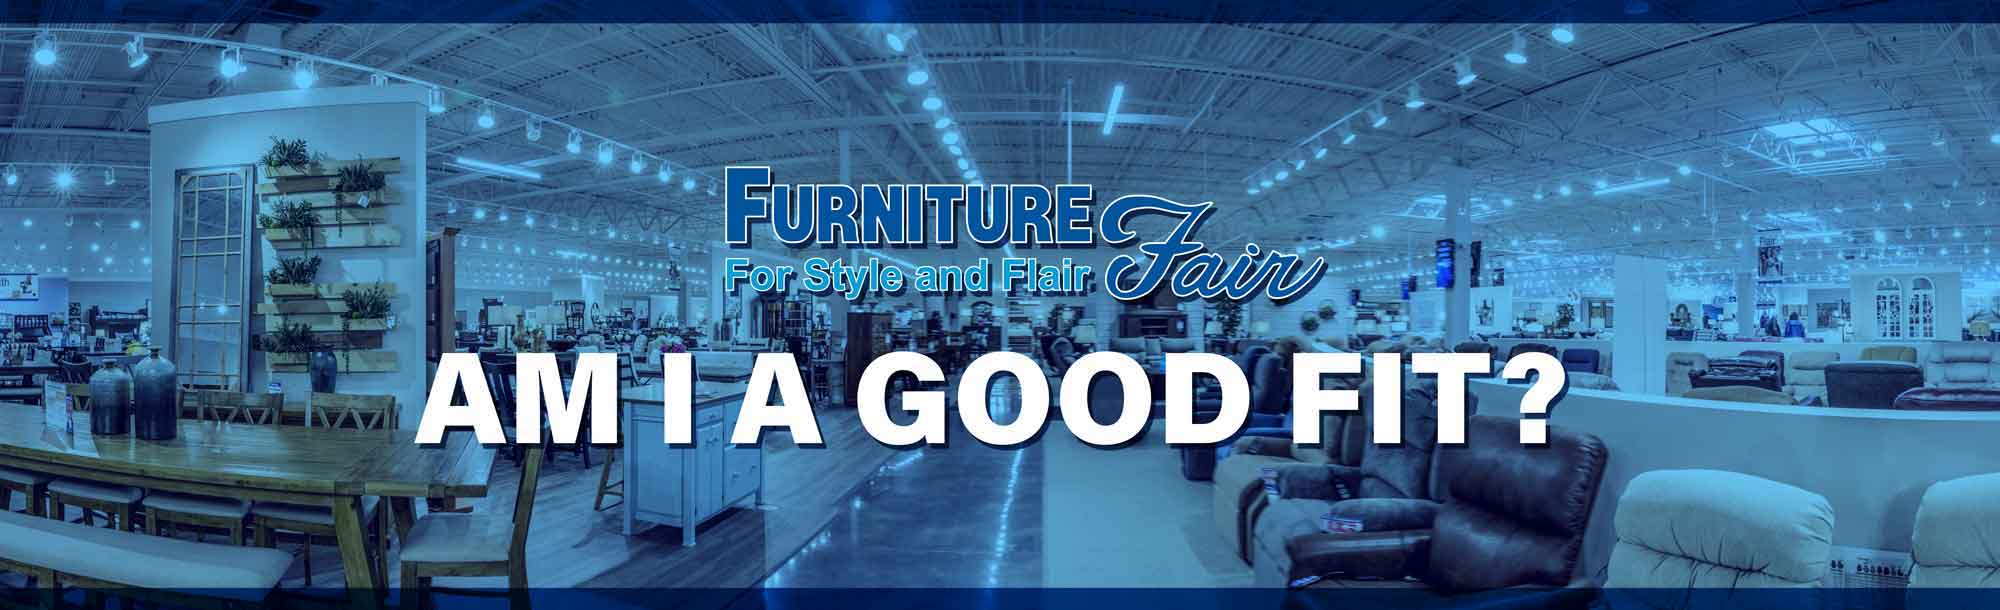 Am I A Good Fit For Furniture Fair? 6 Questions To Ask